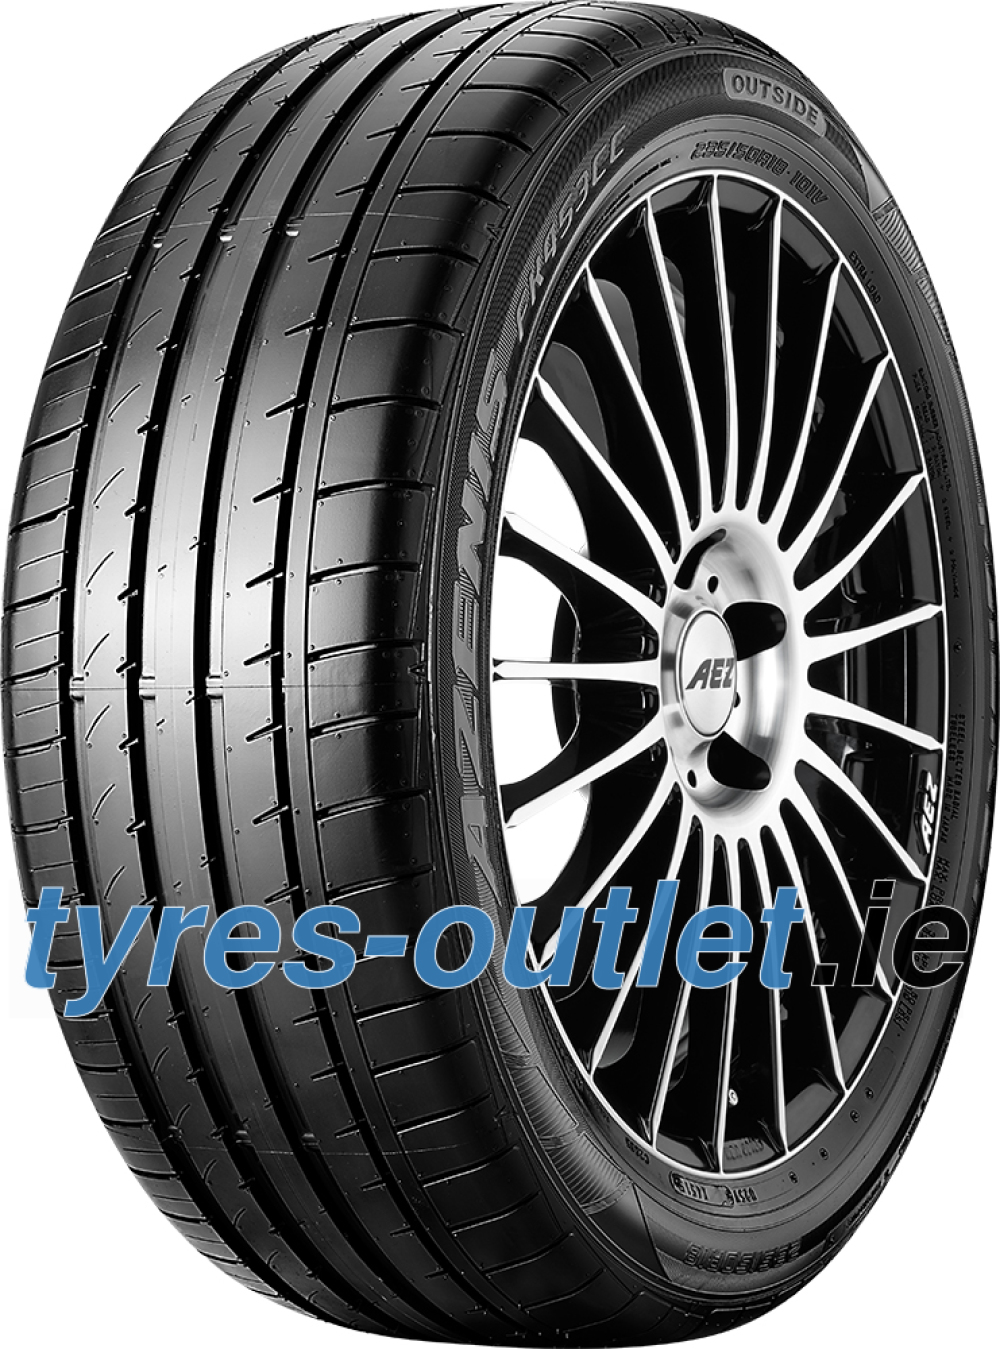 Falken Azenis FK453CC ( 235/50 R18 101V XL with rim protection (MFS) BLT )